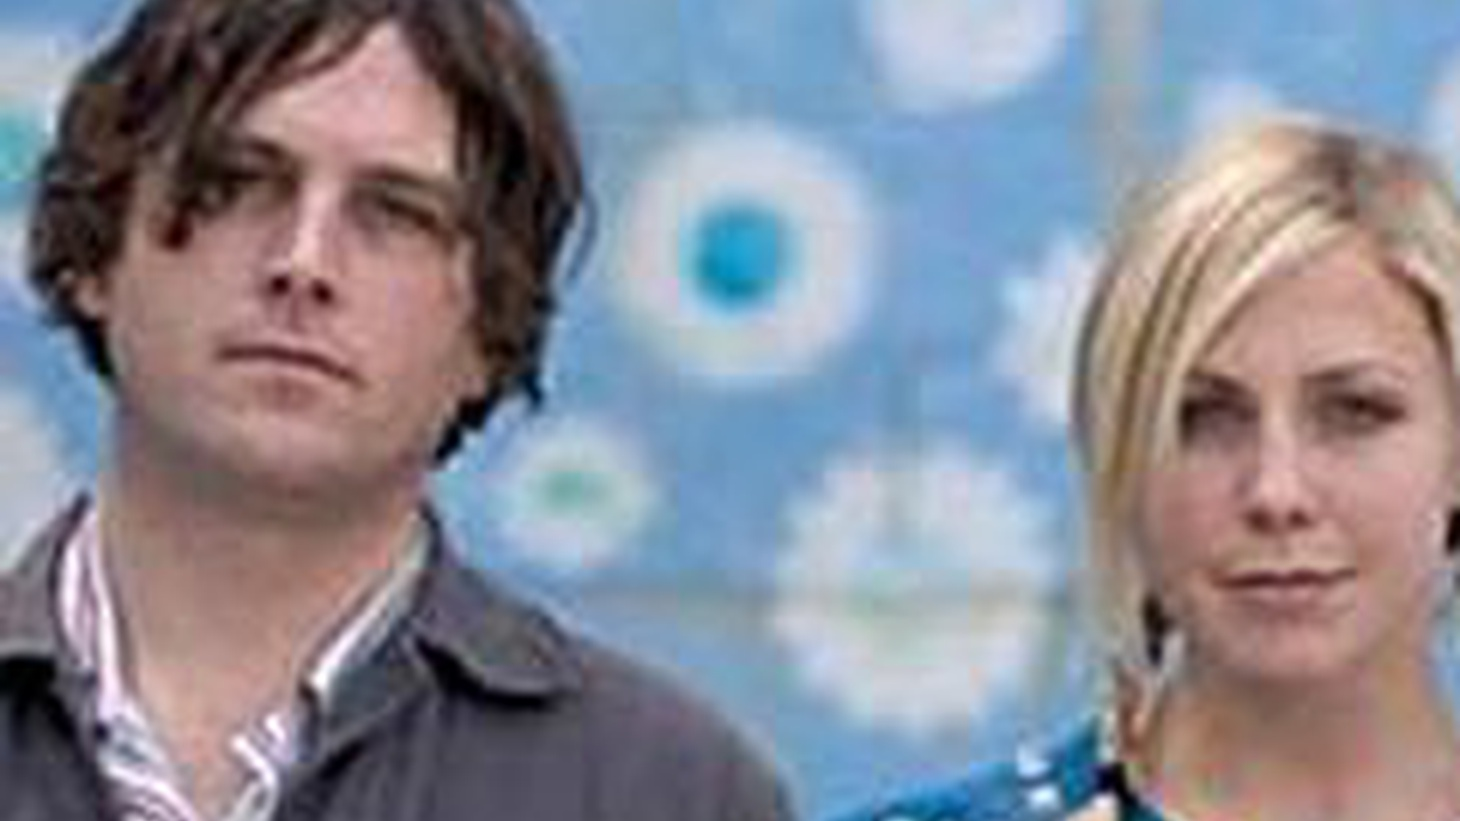 Jack Drag and Blake Hazard, aka The Submarines, have joined forces to make beautiful music together on Morning Becomes Eclectic.